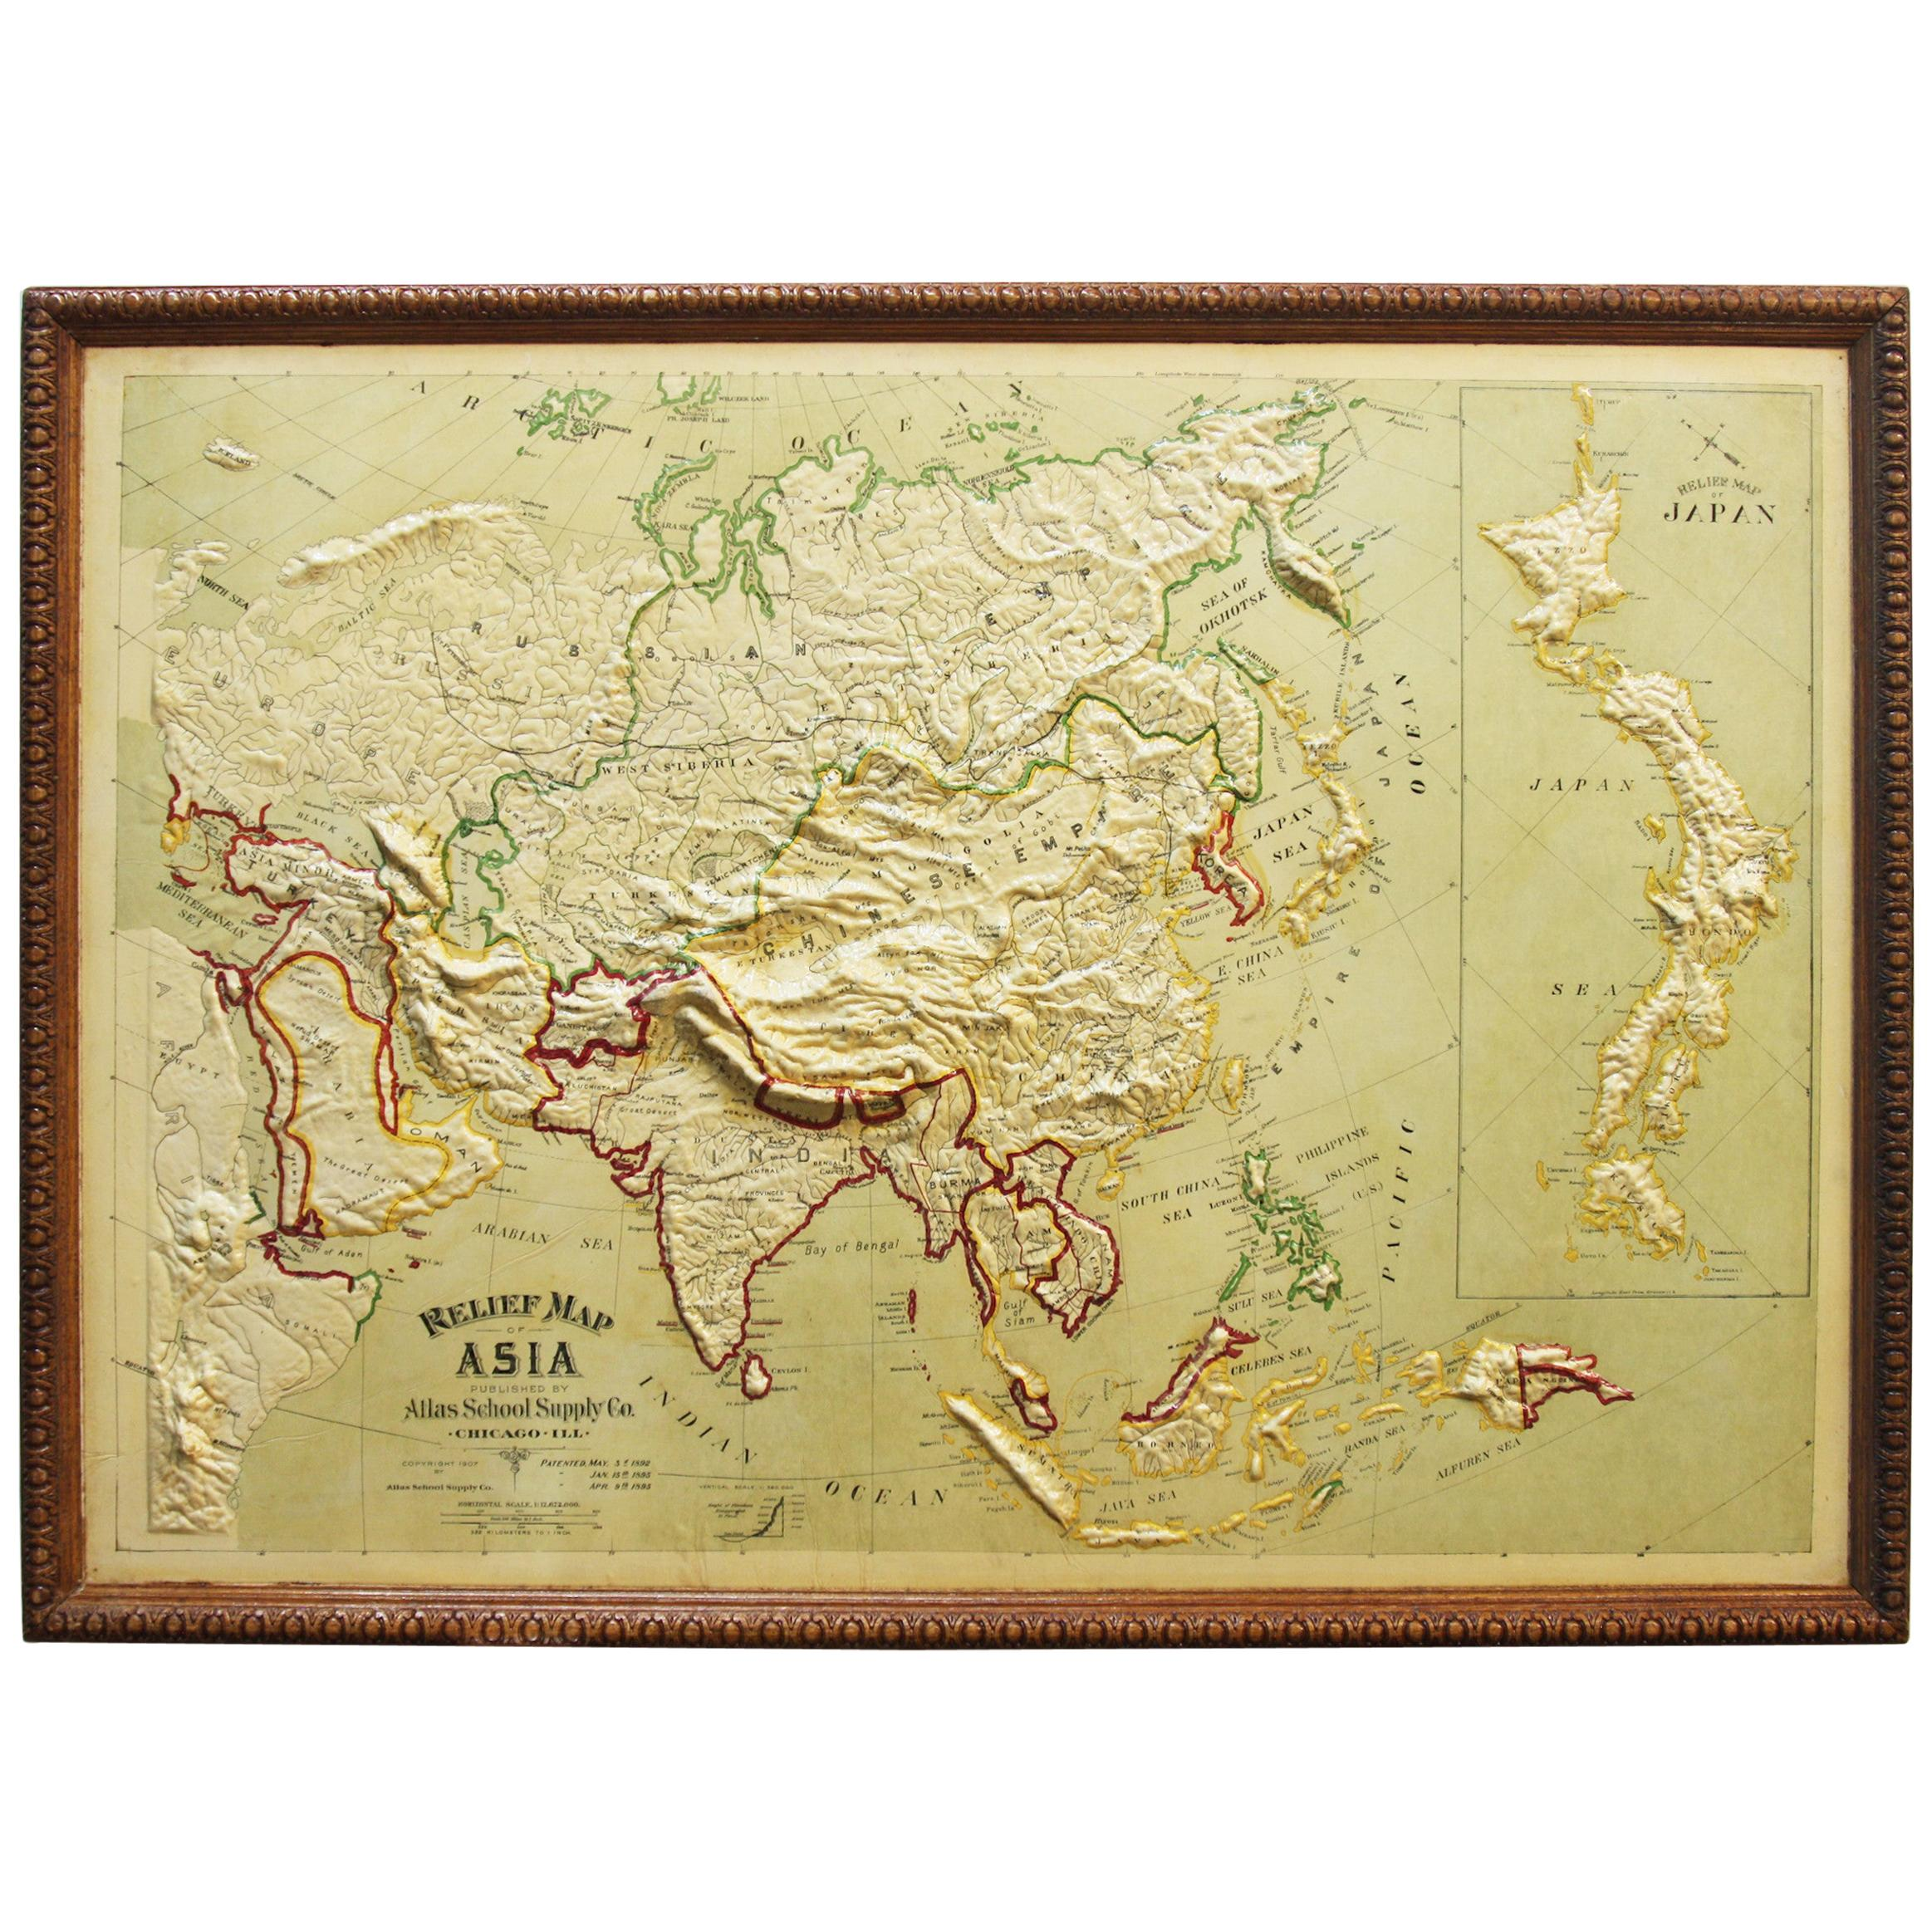 Large 1907 Vintage Relief Map of Asia by Atlas School Supply of Chicago